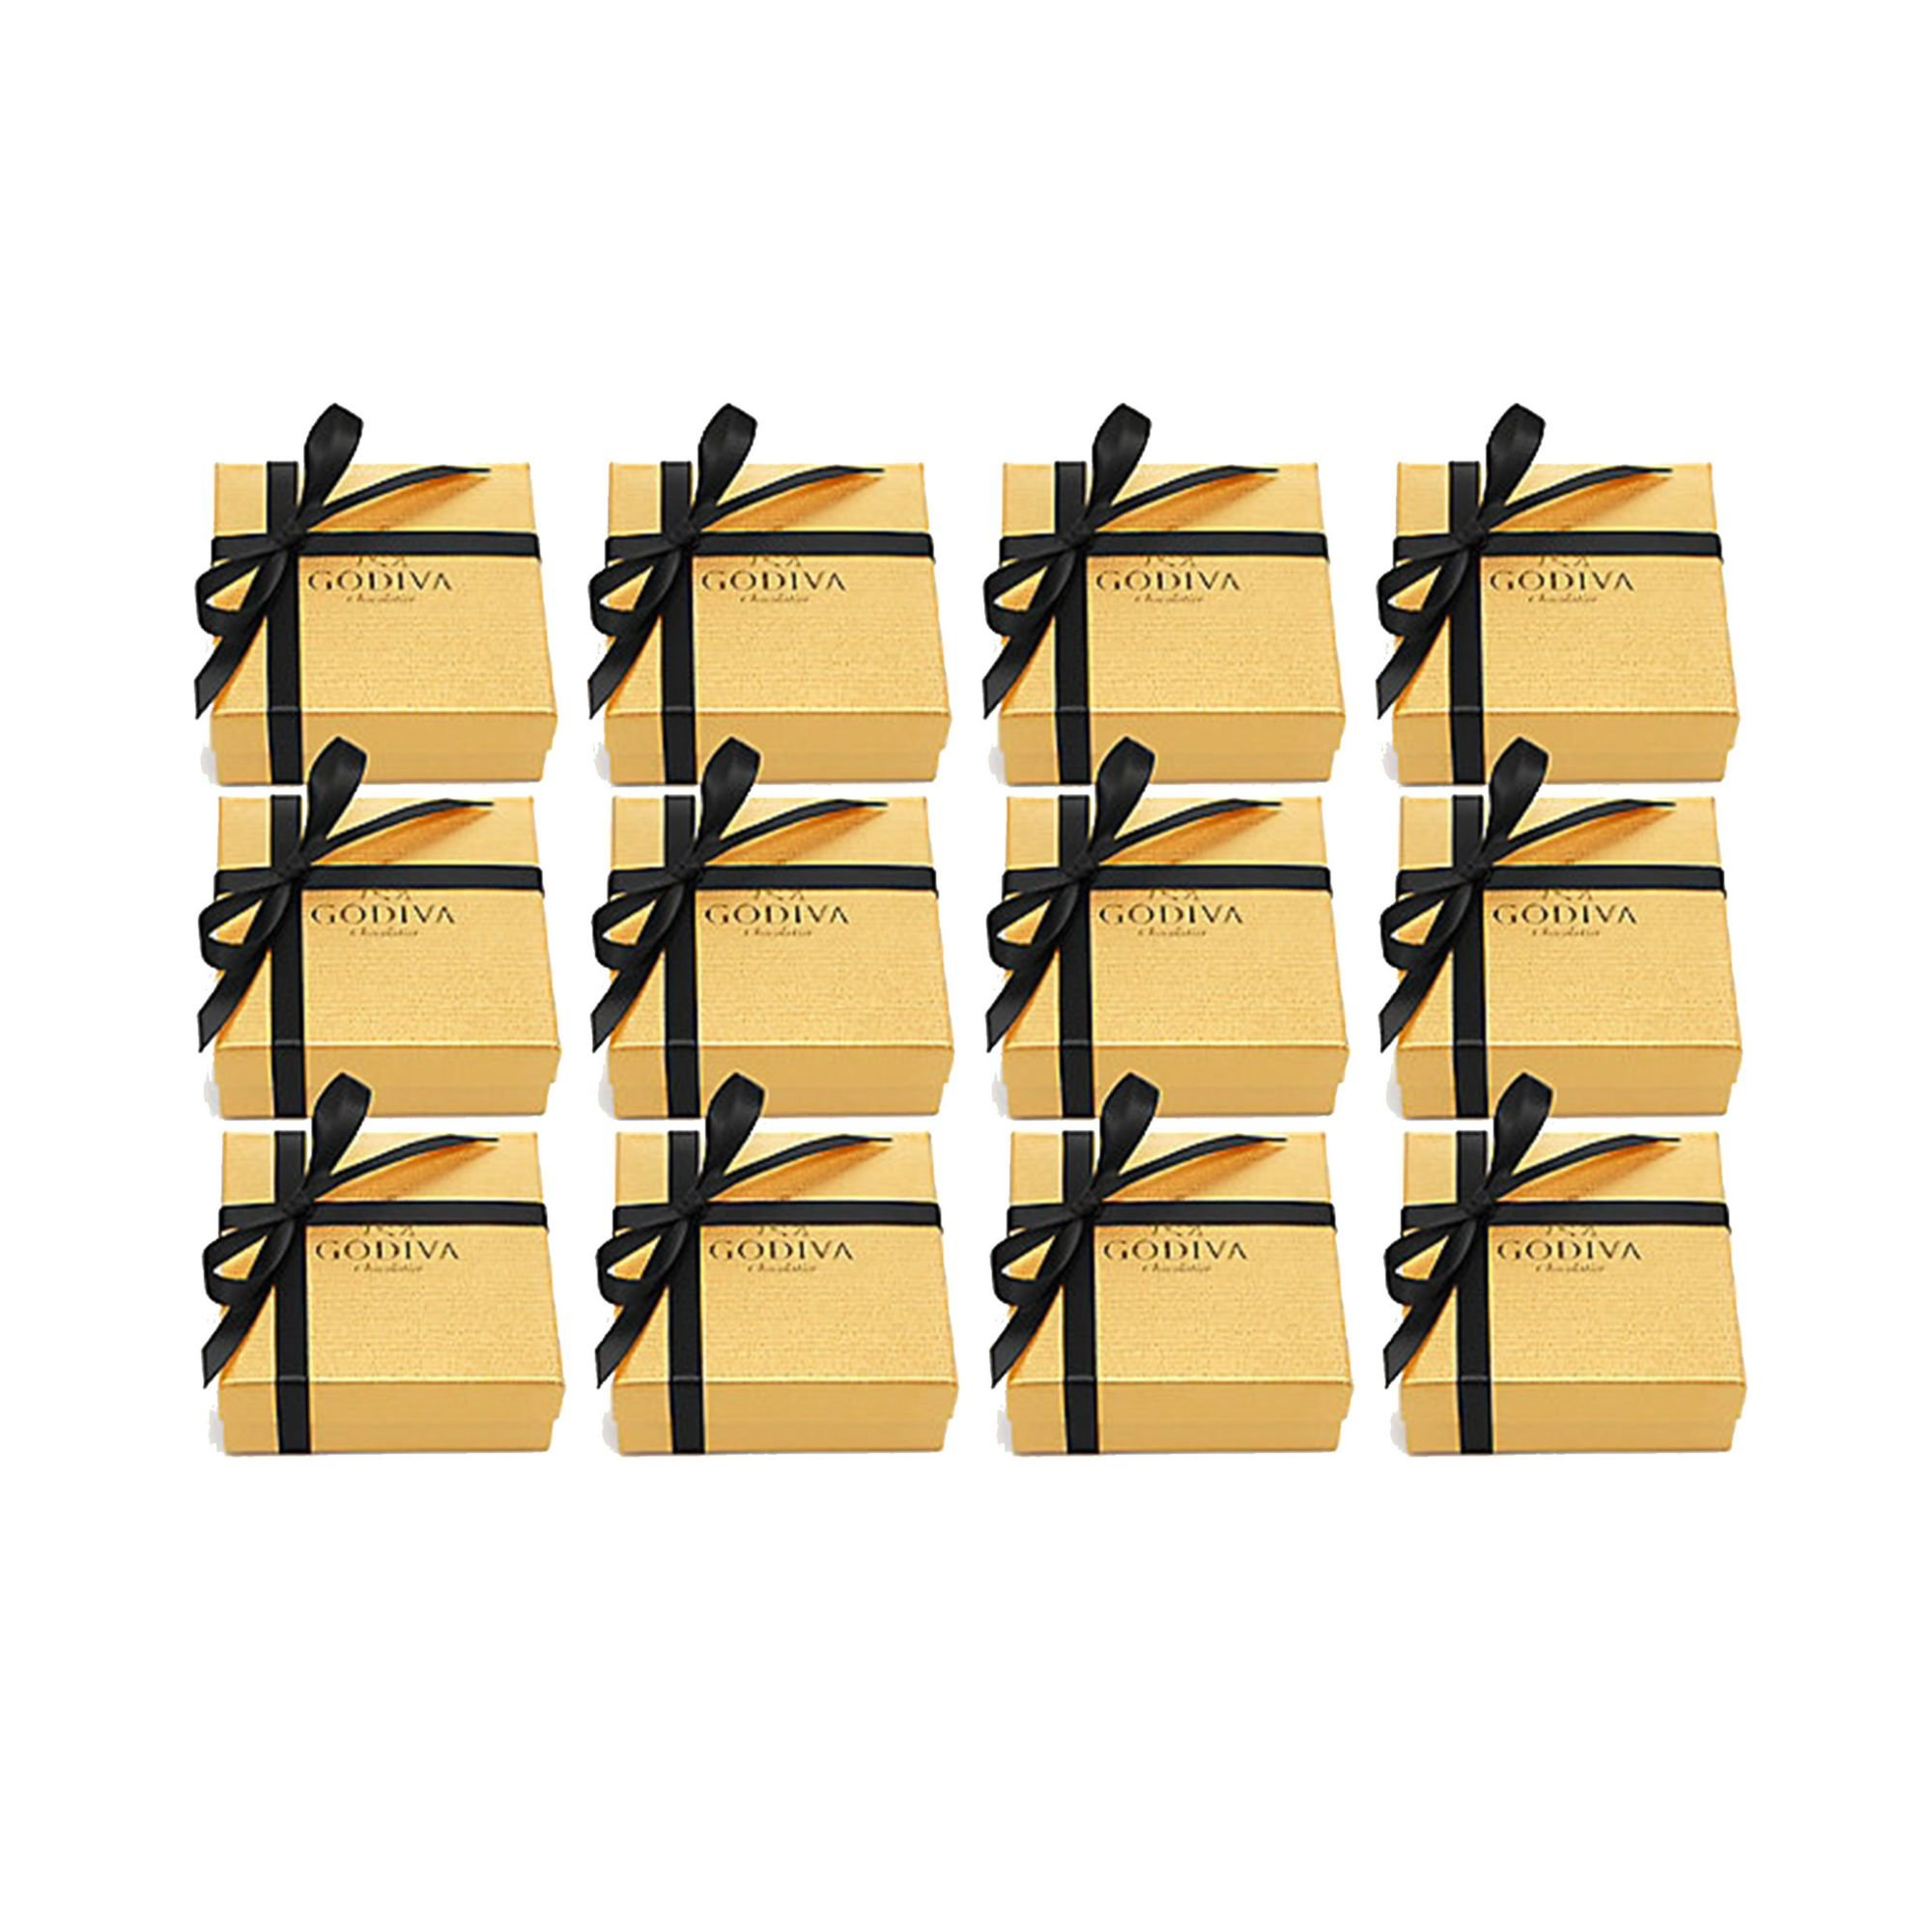 Godiva Chocolatier Chocolate Gold Favor, 4 Piece Gift Box, Black Ribbon, Assorted, Great for Stocking Stuffers, Set of 12